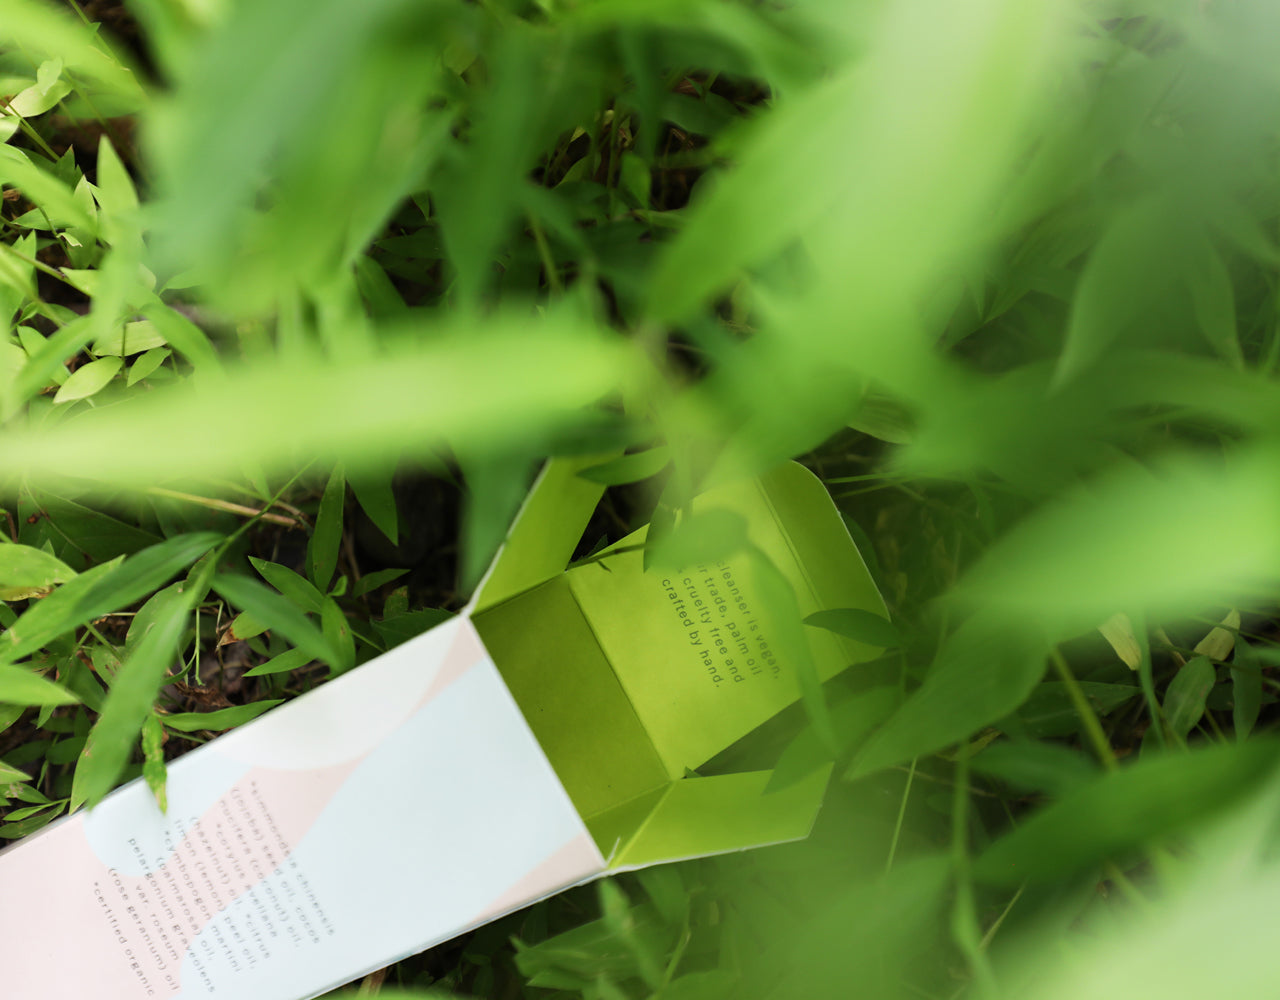 an open product box in the grass